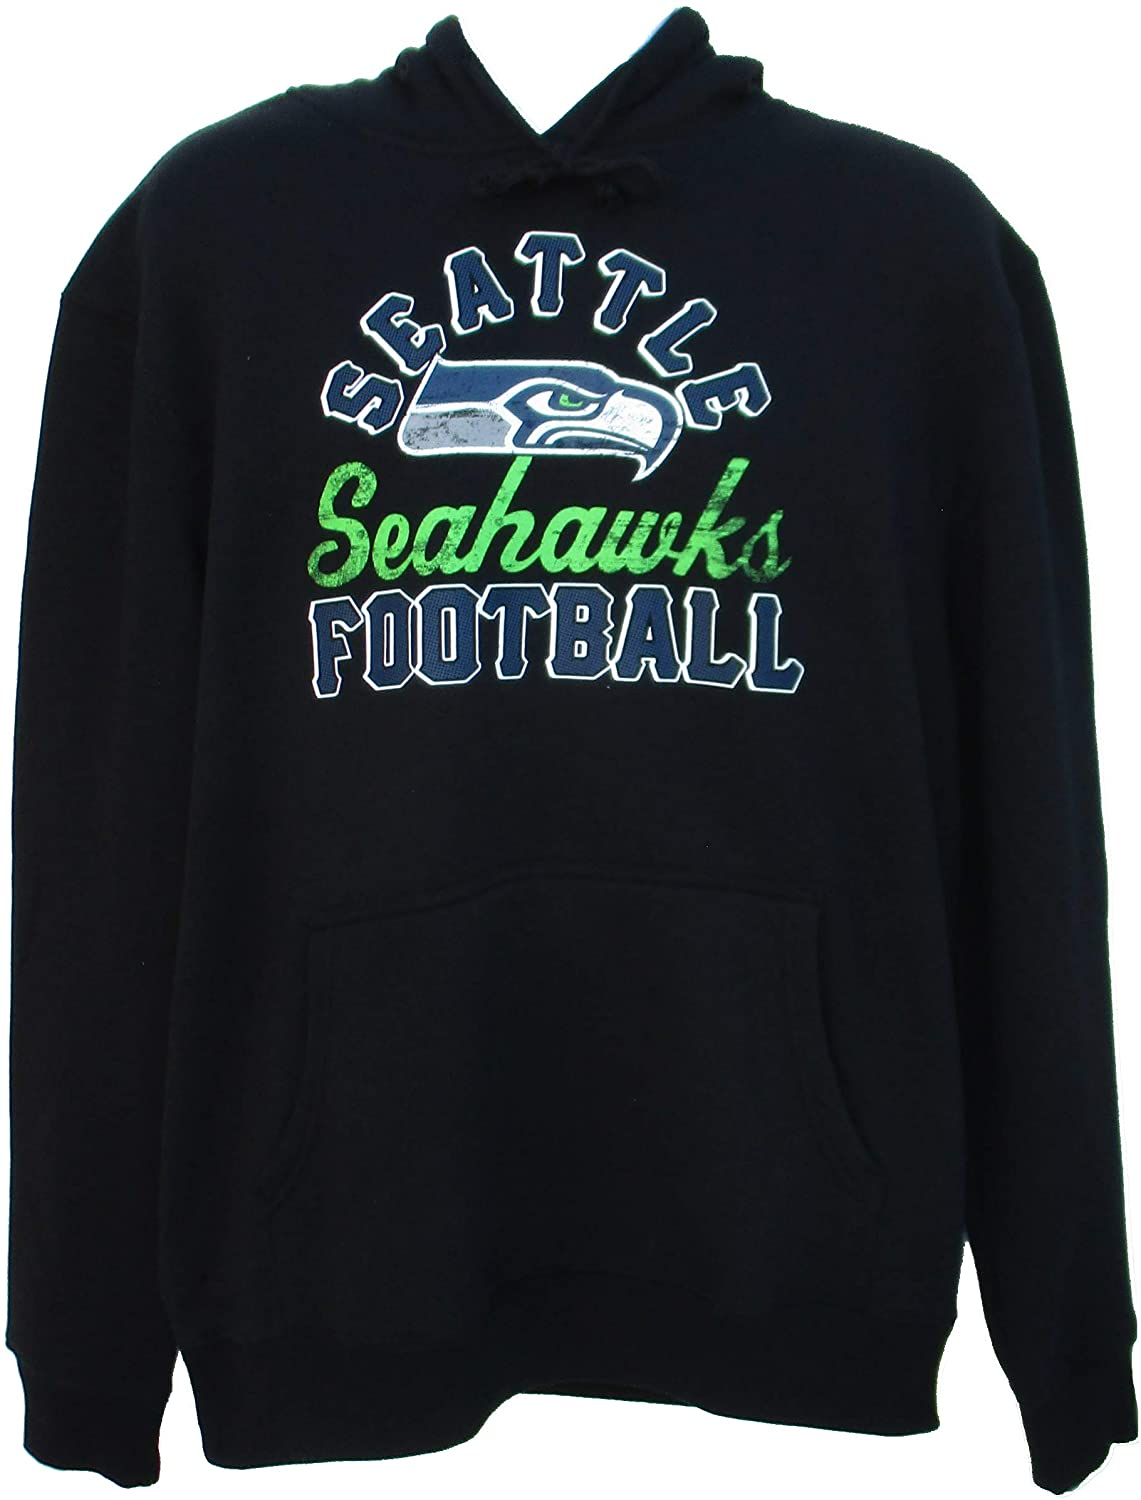 Outerstuff Seattle Seahawks Hooded Sweatshirt Mens Size X-Large XL - Black